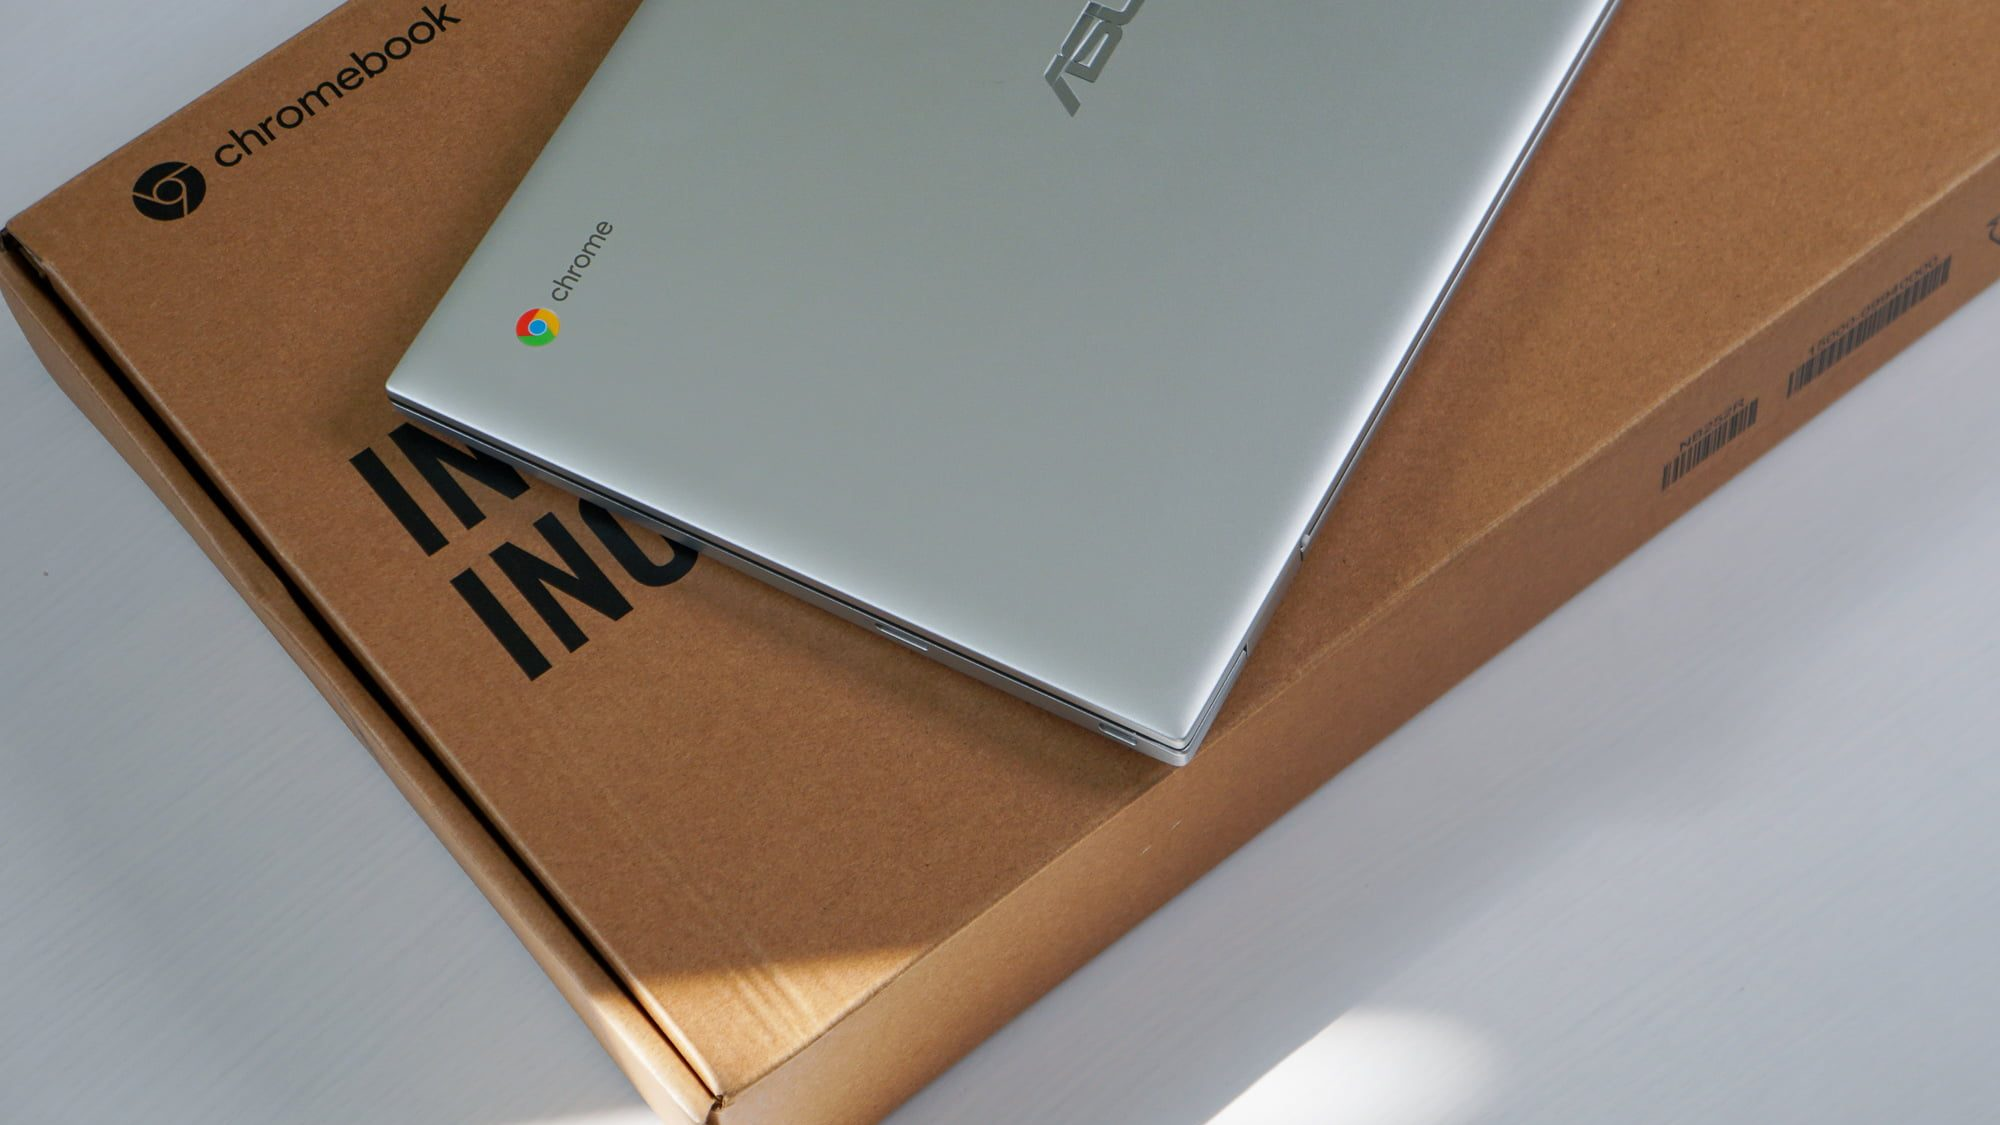 ASUS Chromebook C425 Unboxing and Hands-On [VIDEO]